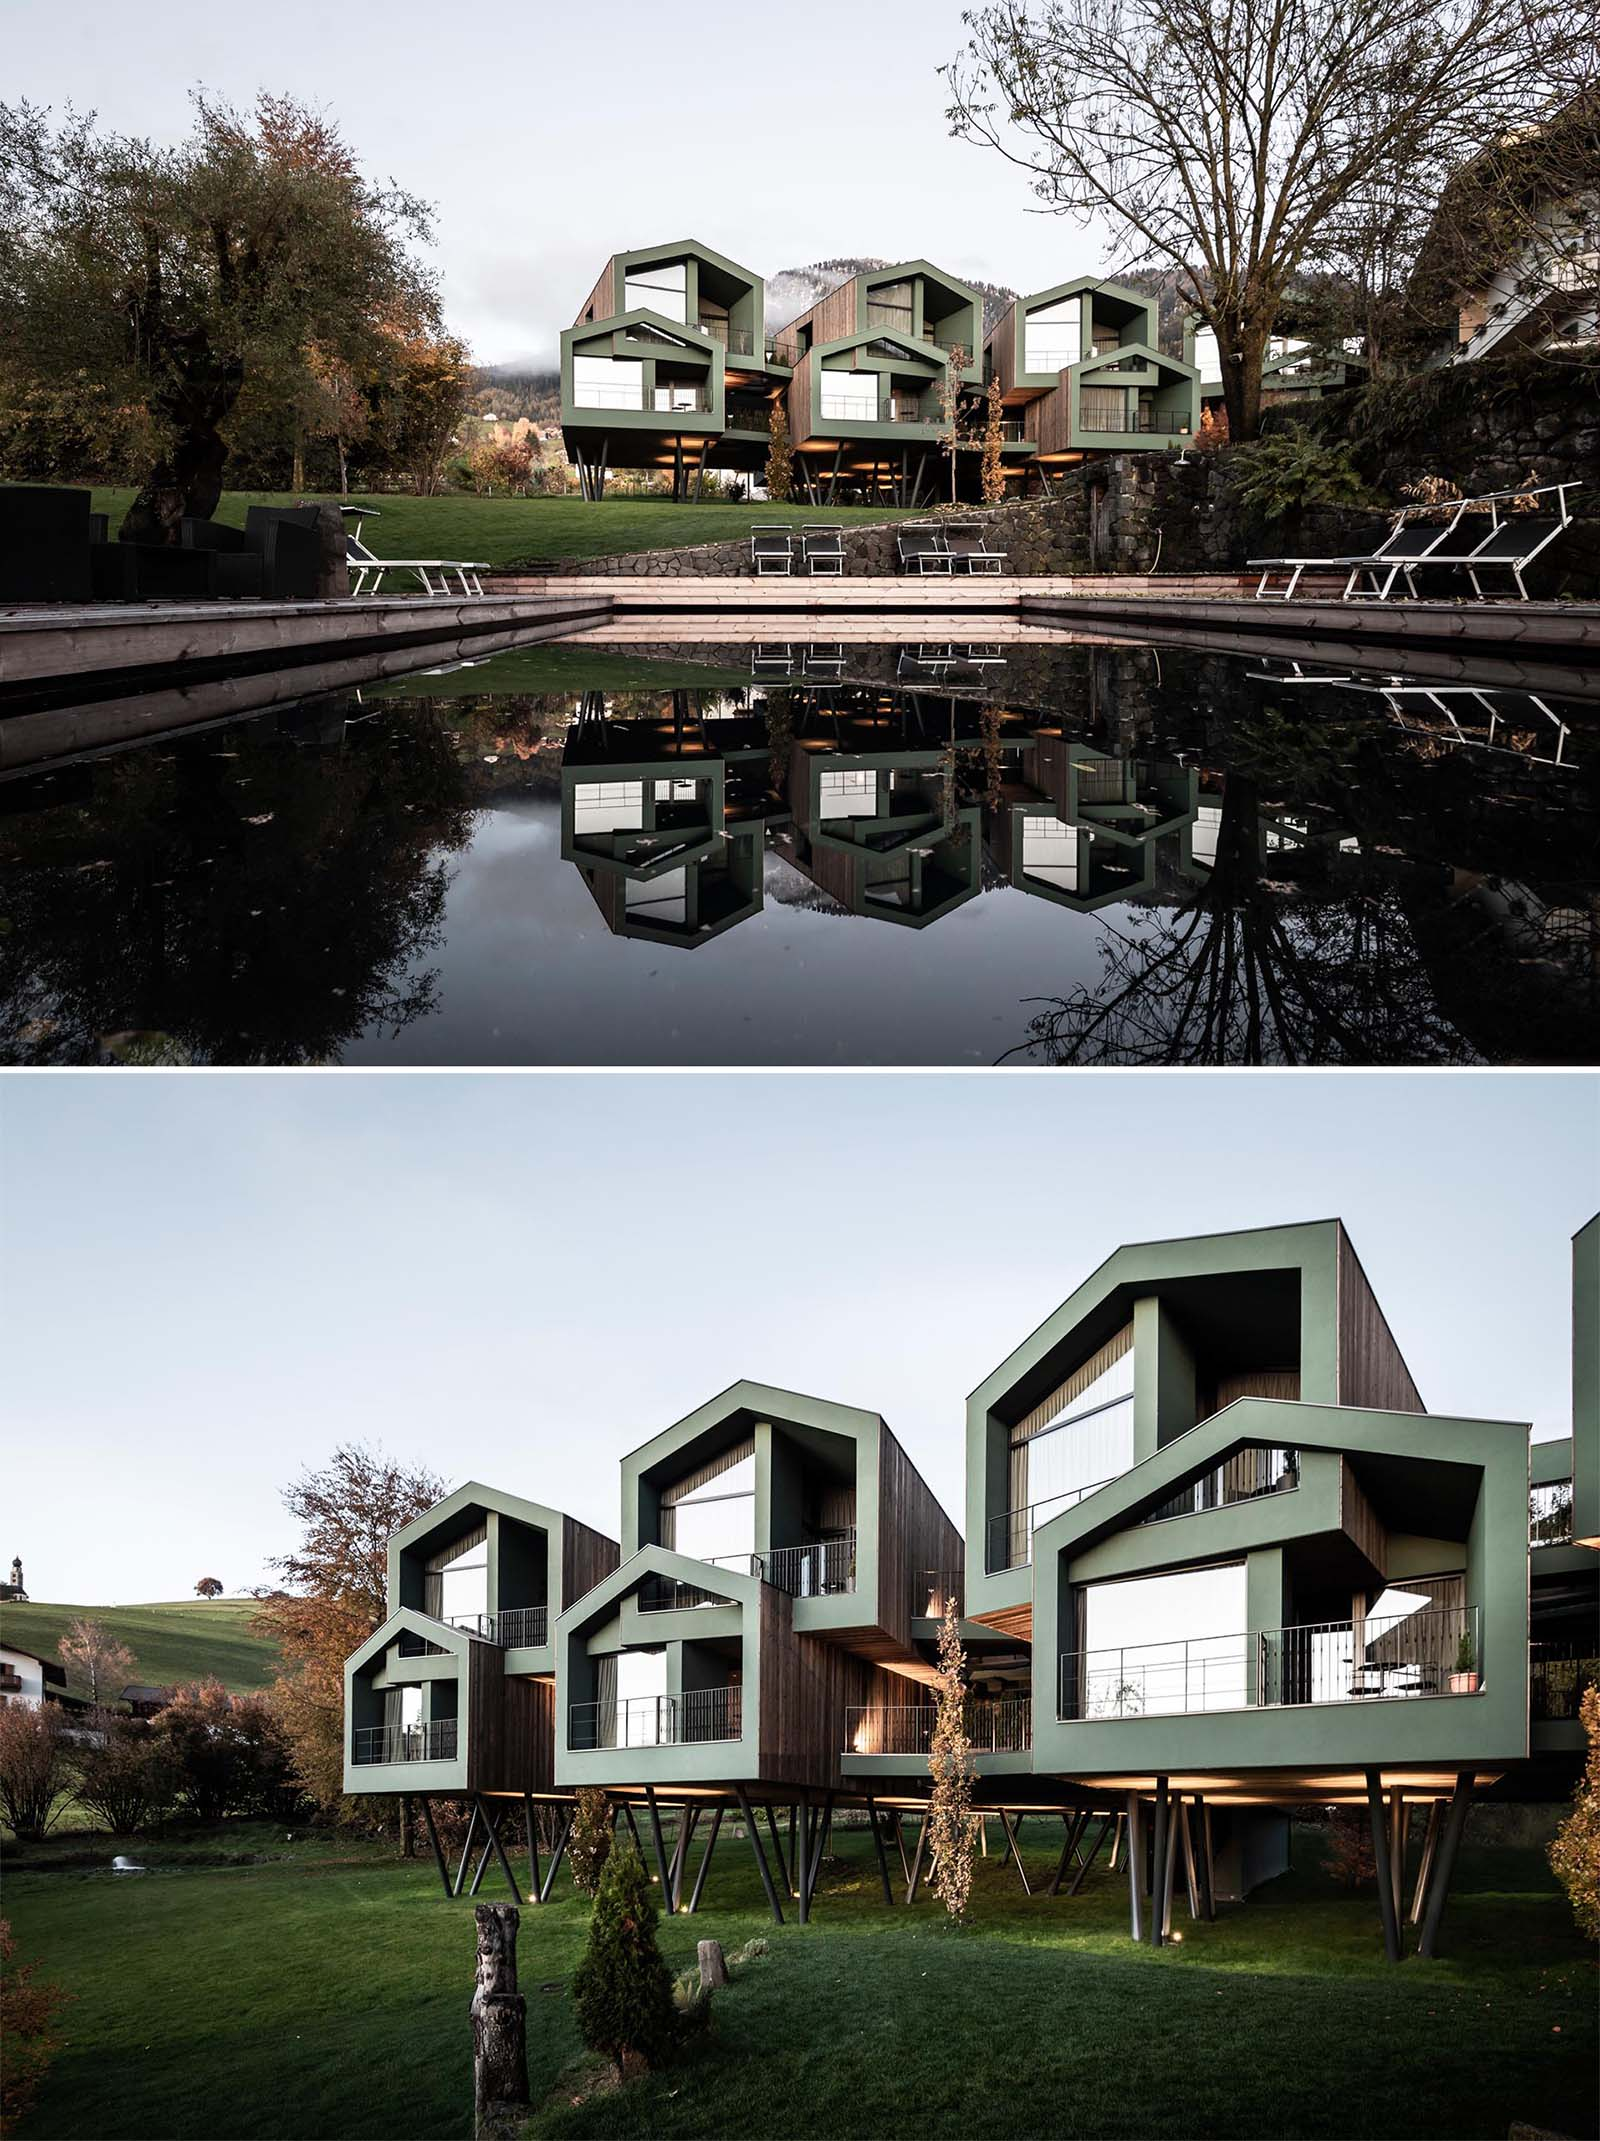 A collection of elevated modern hotel rooms designed to look like tree houses.